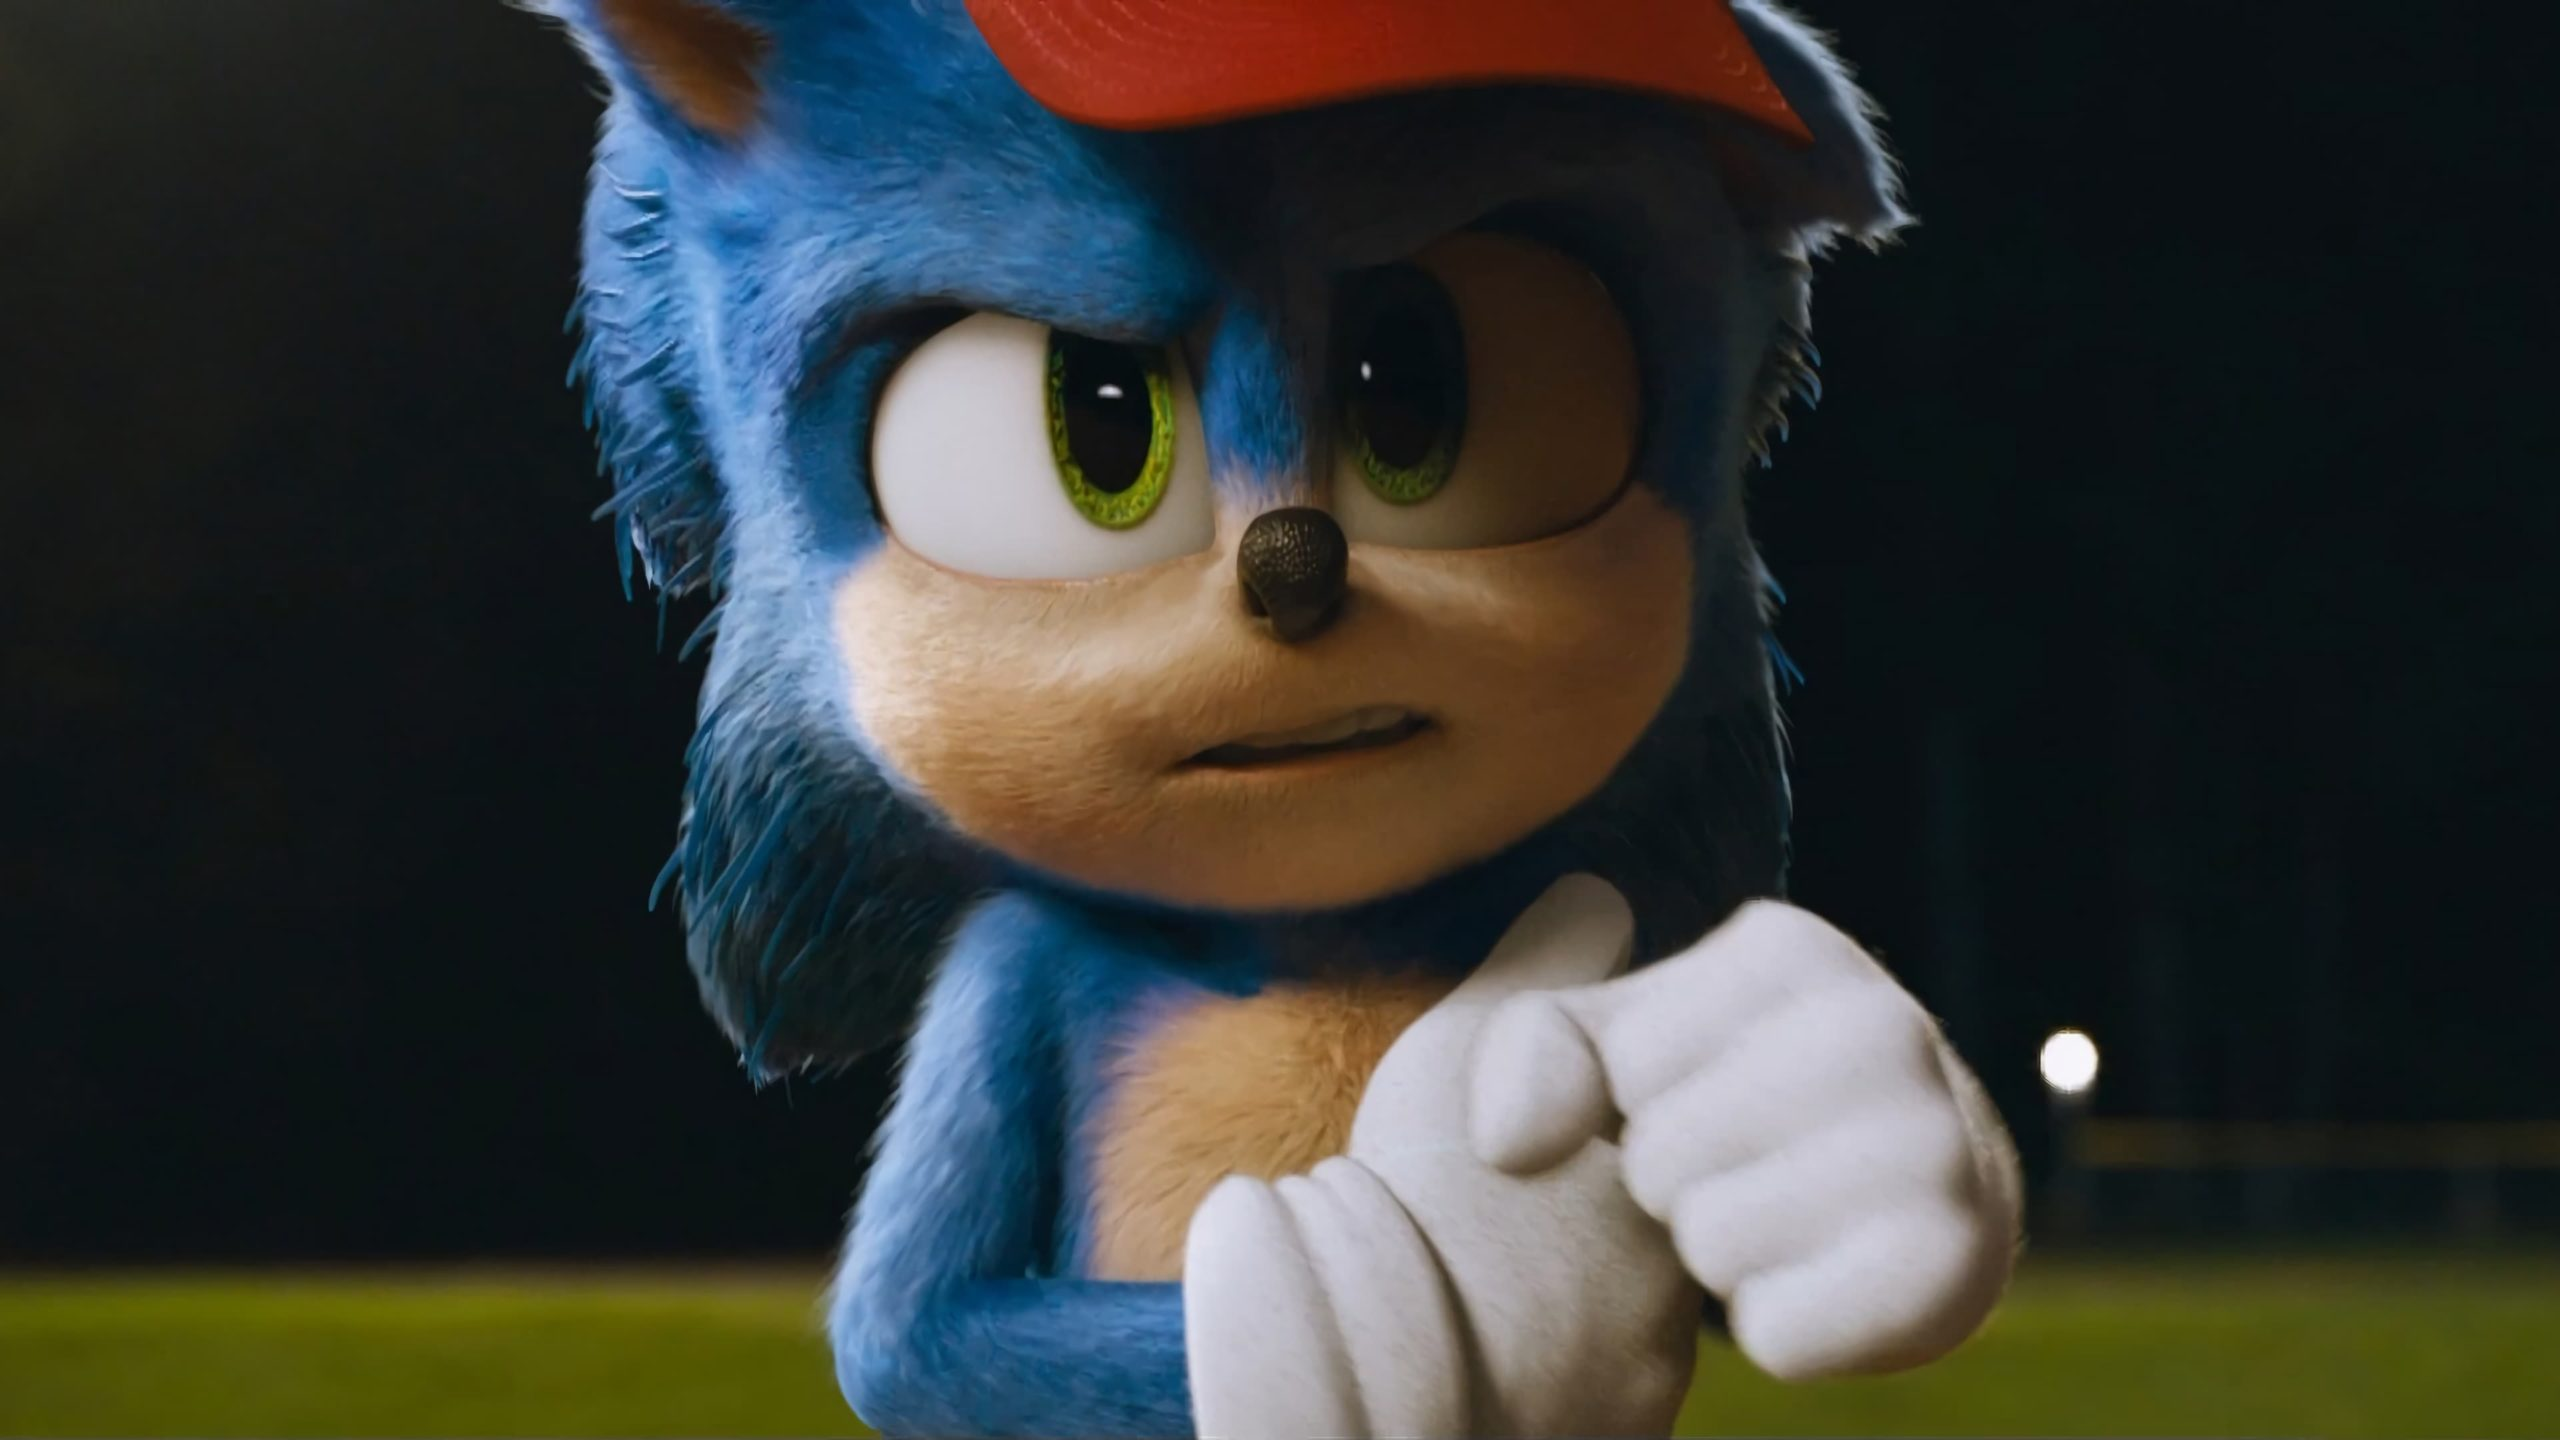 Ben Schwartz does an excellent job voicing Sonic